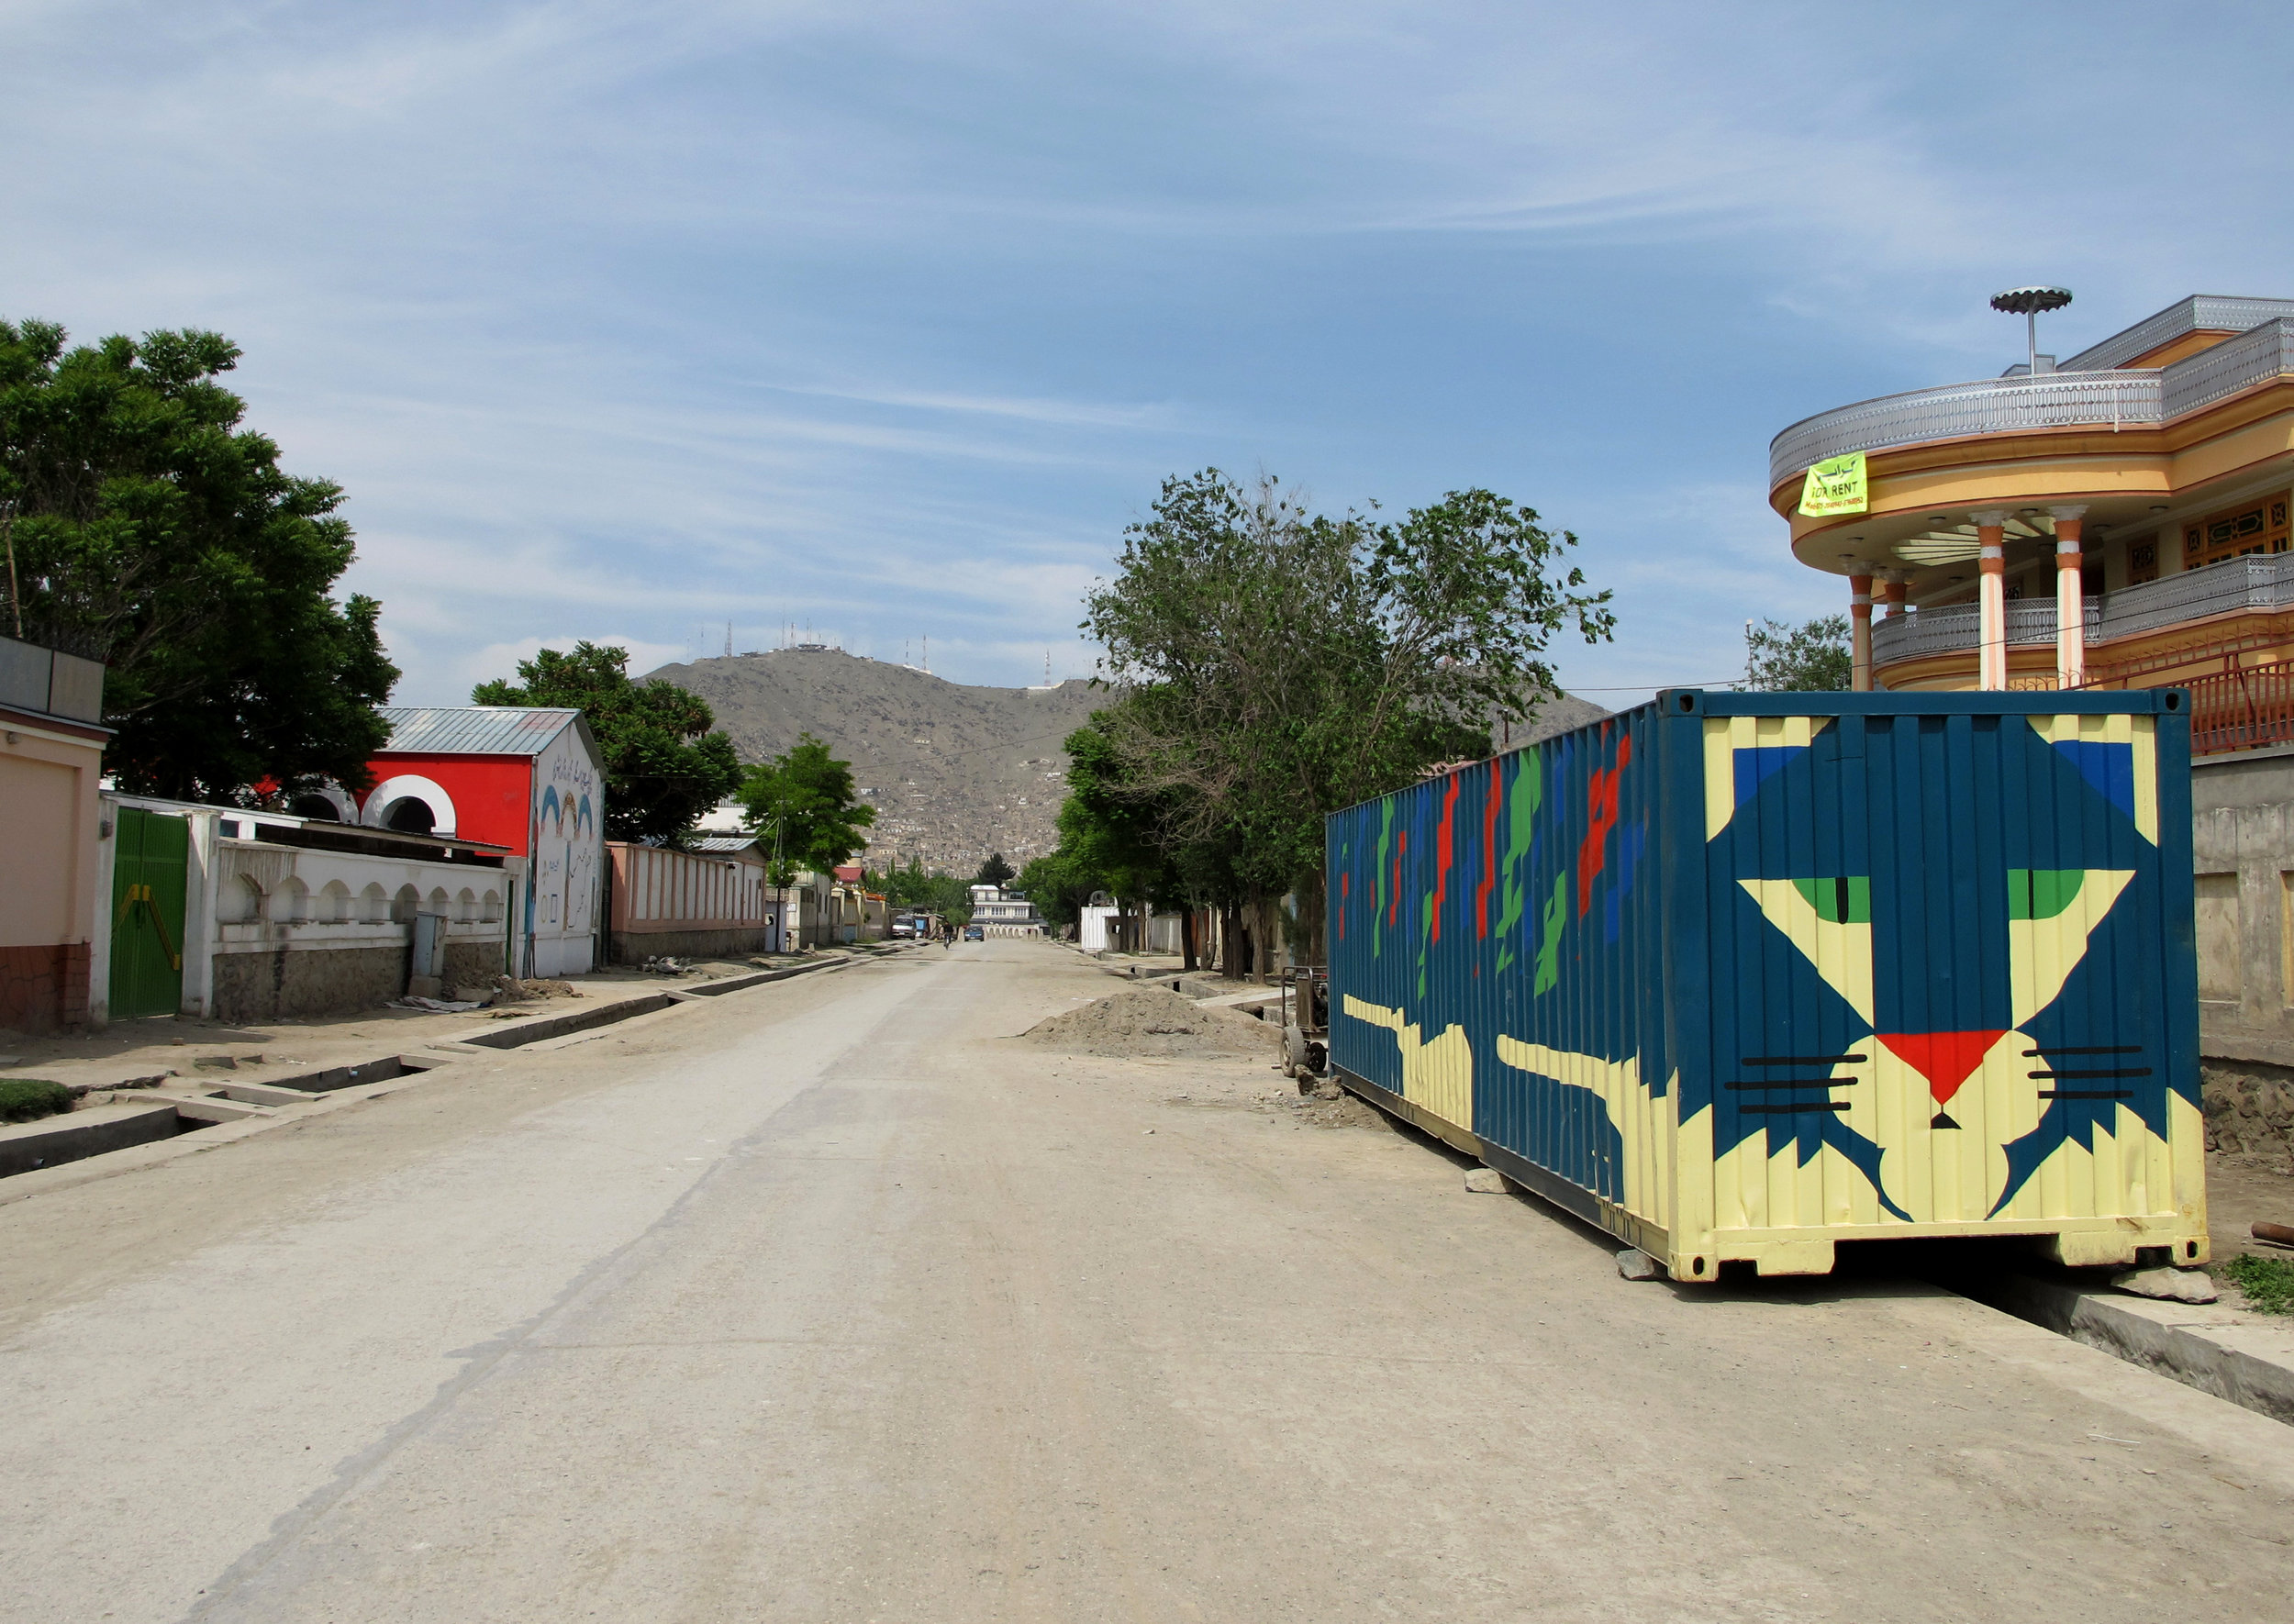 Mini Mobile Circus For Children. Container Project, 2010